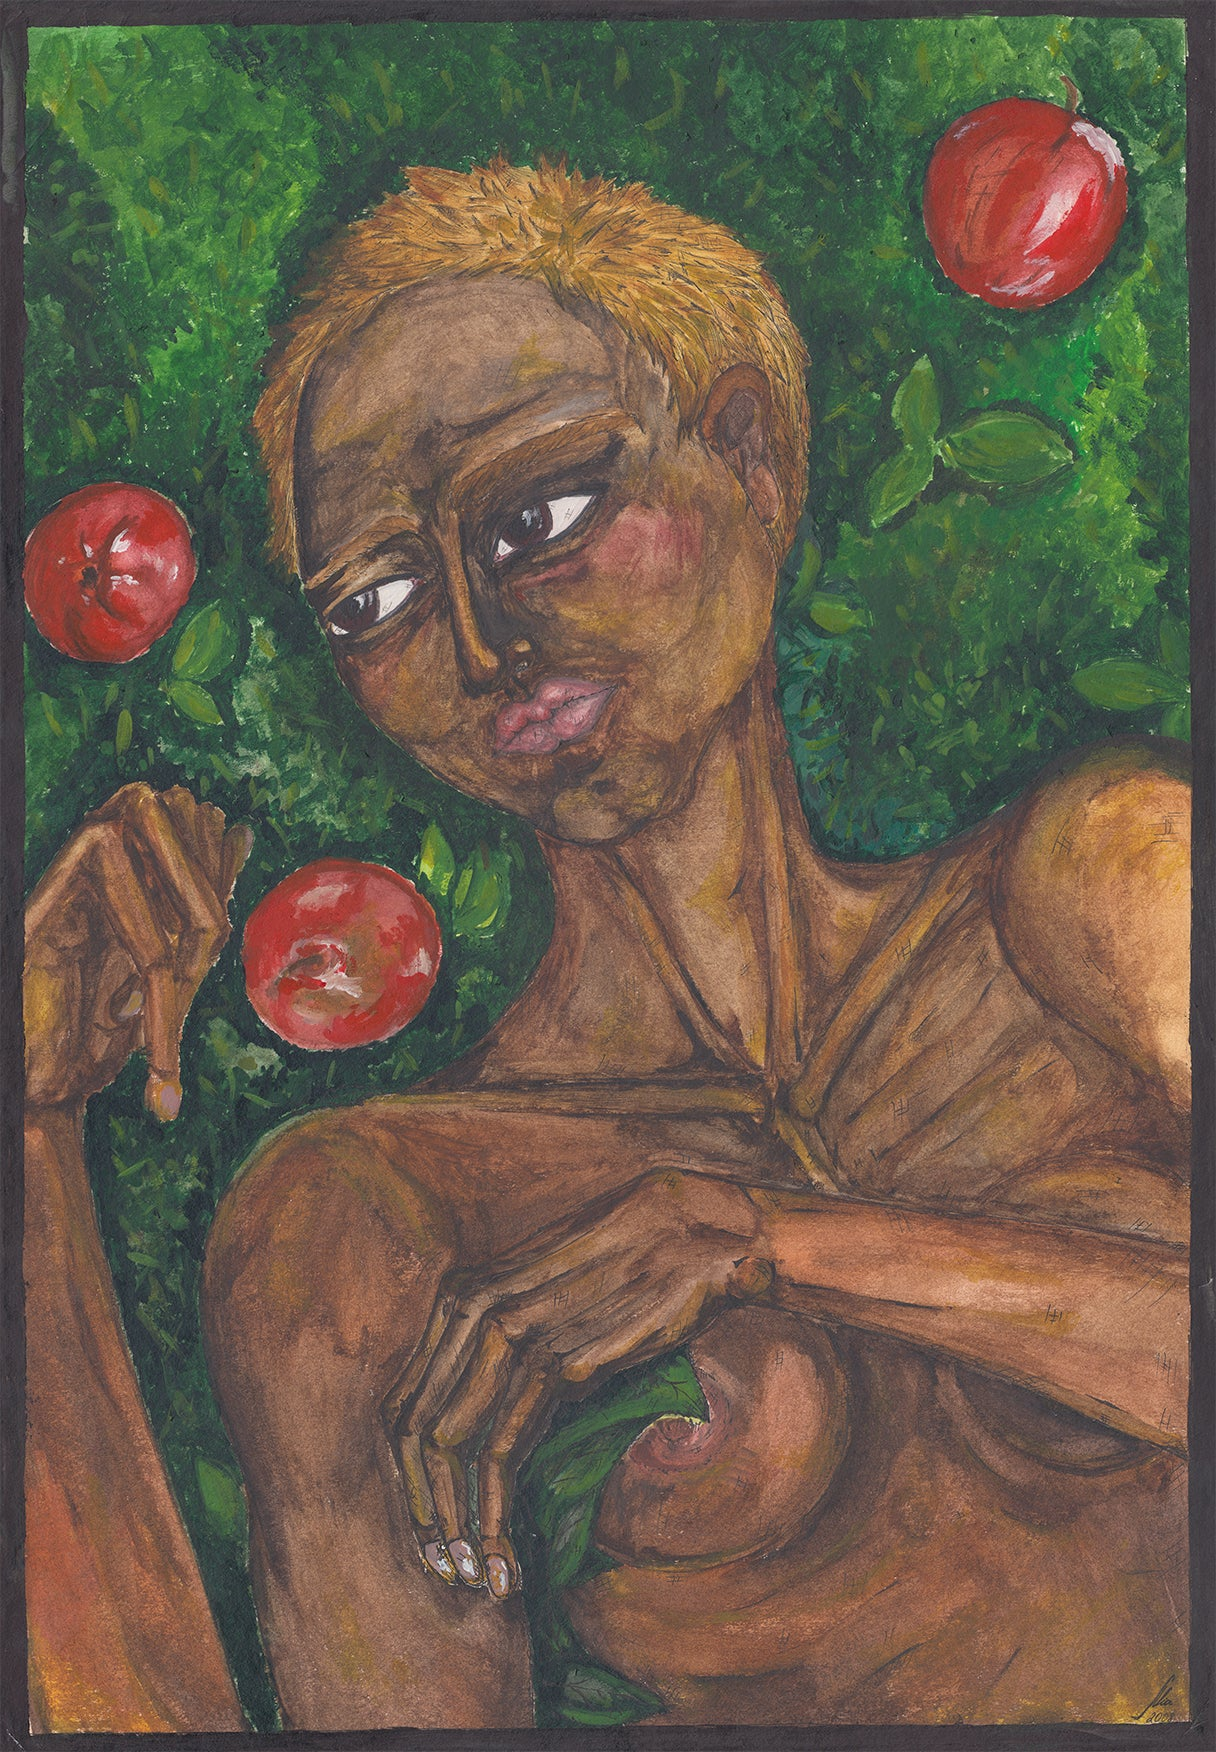 Nude Among Apples